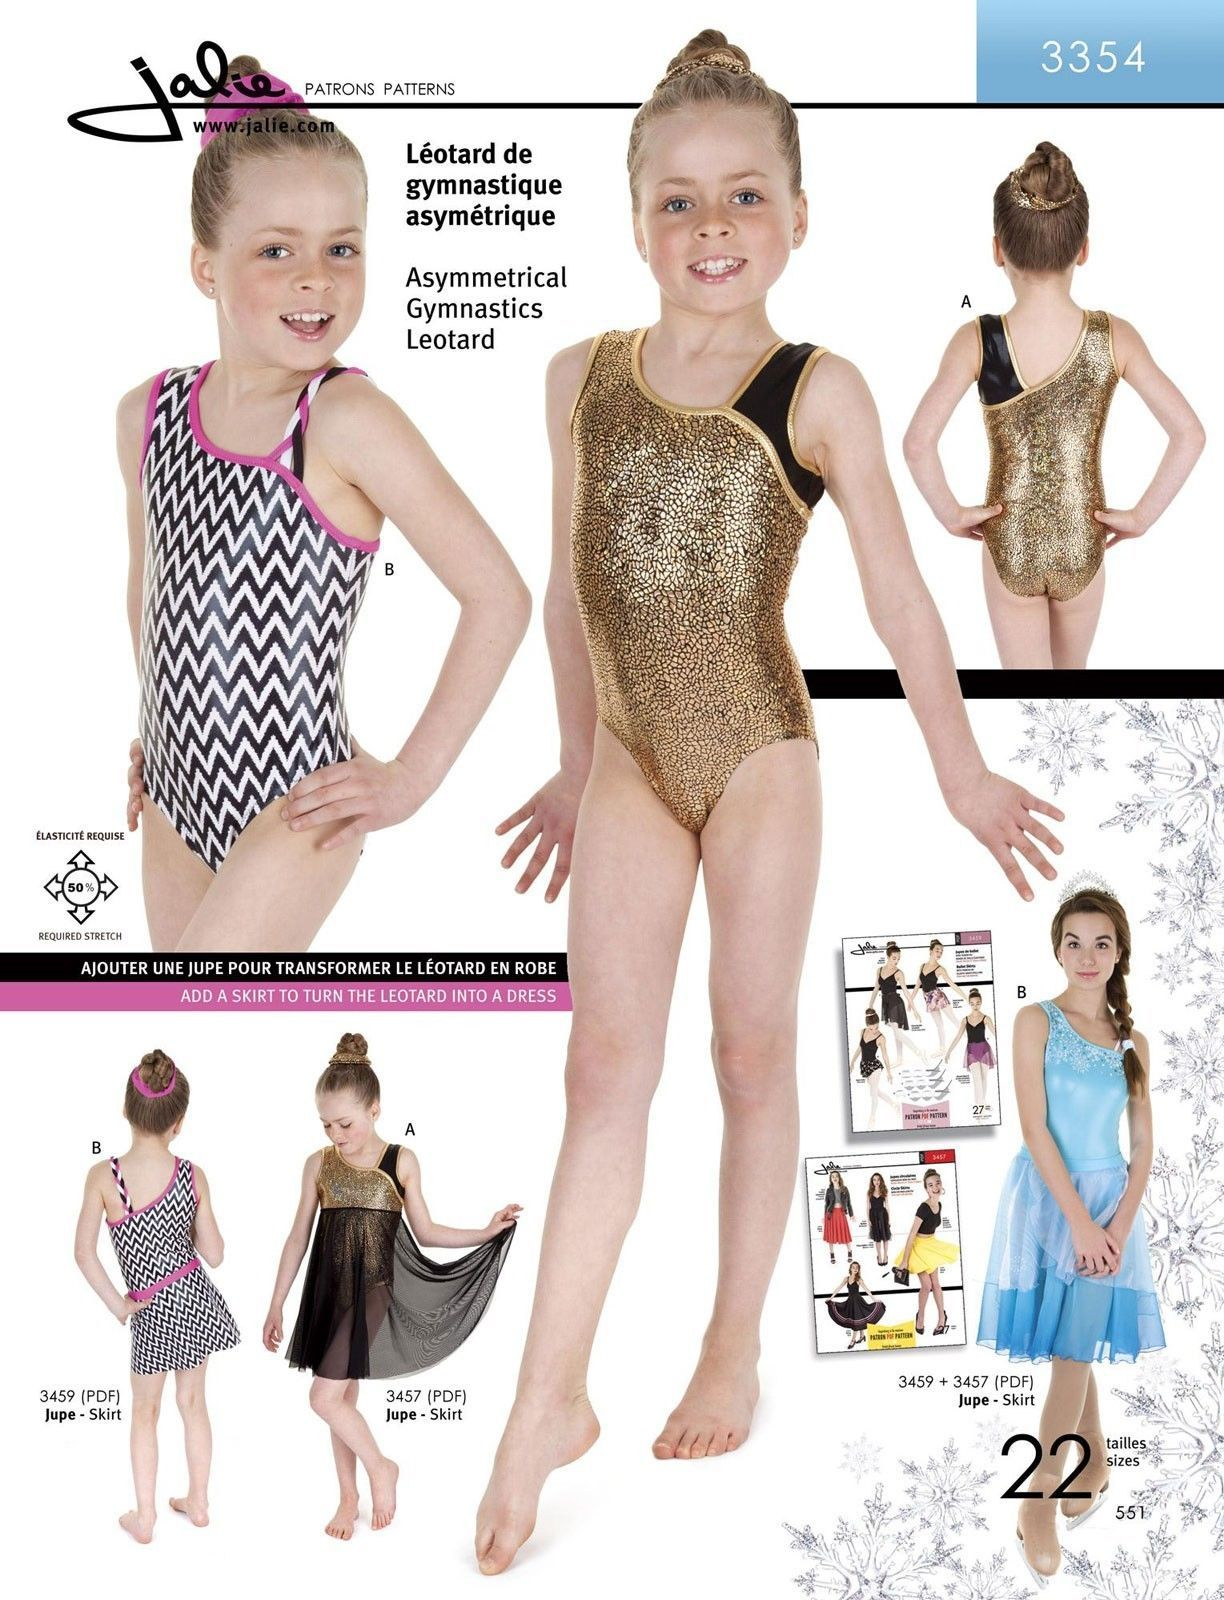 5f5f8ed4e203  11.95 - Jalie Asymmetrical Neck Tank Gymnastics Leotard Sewing ...